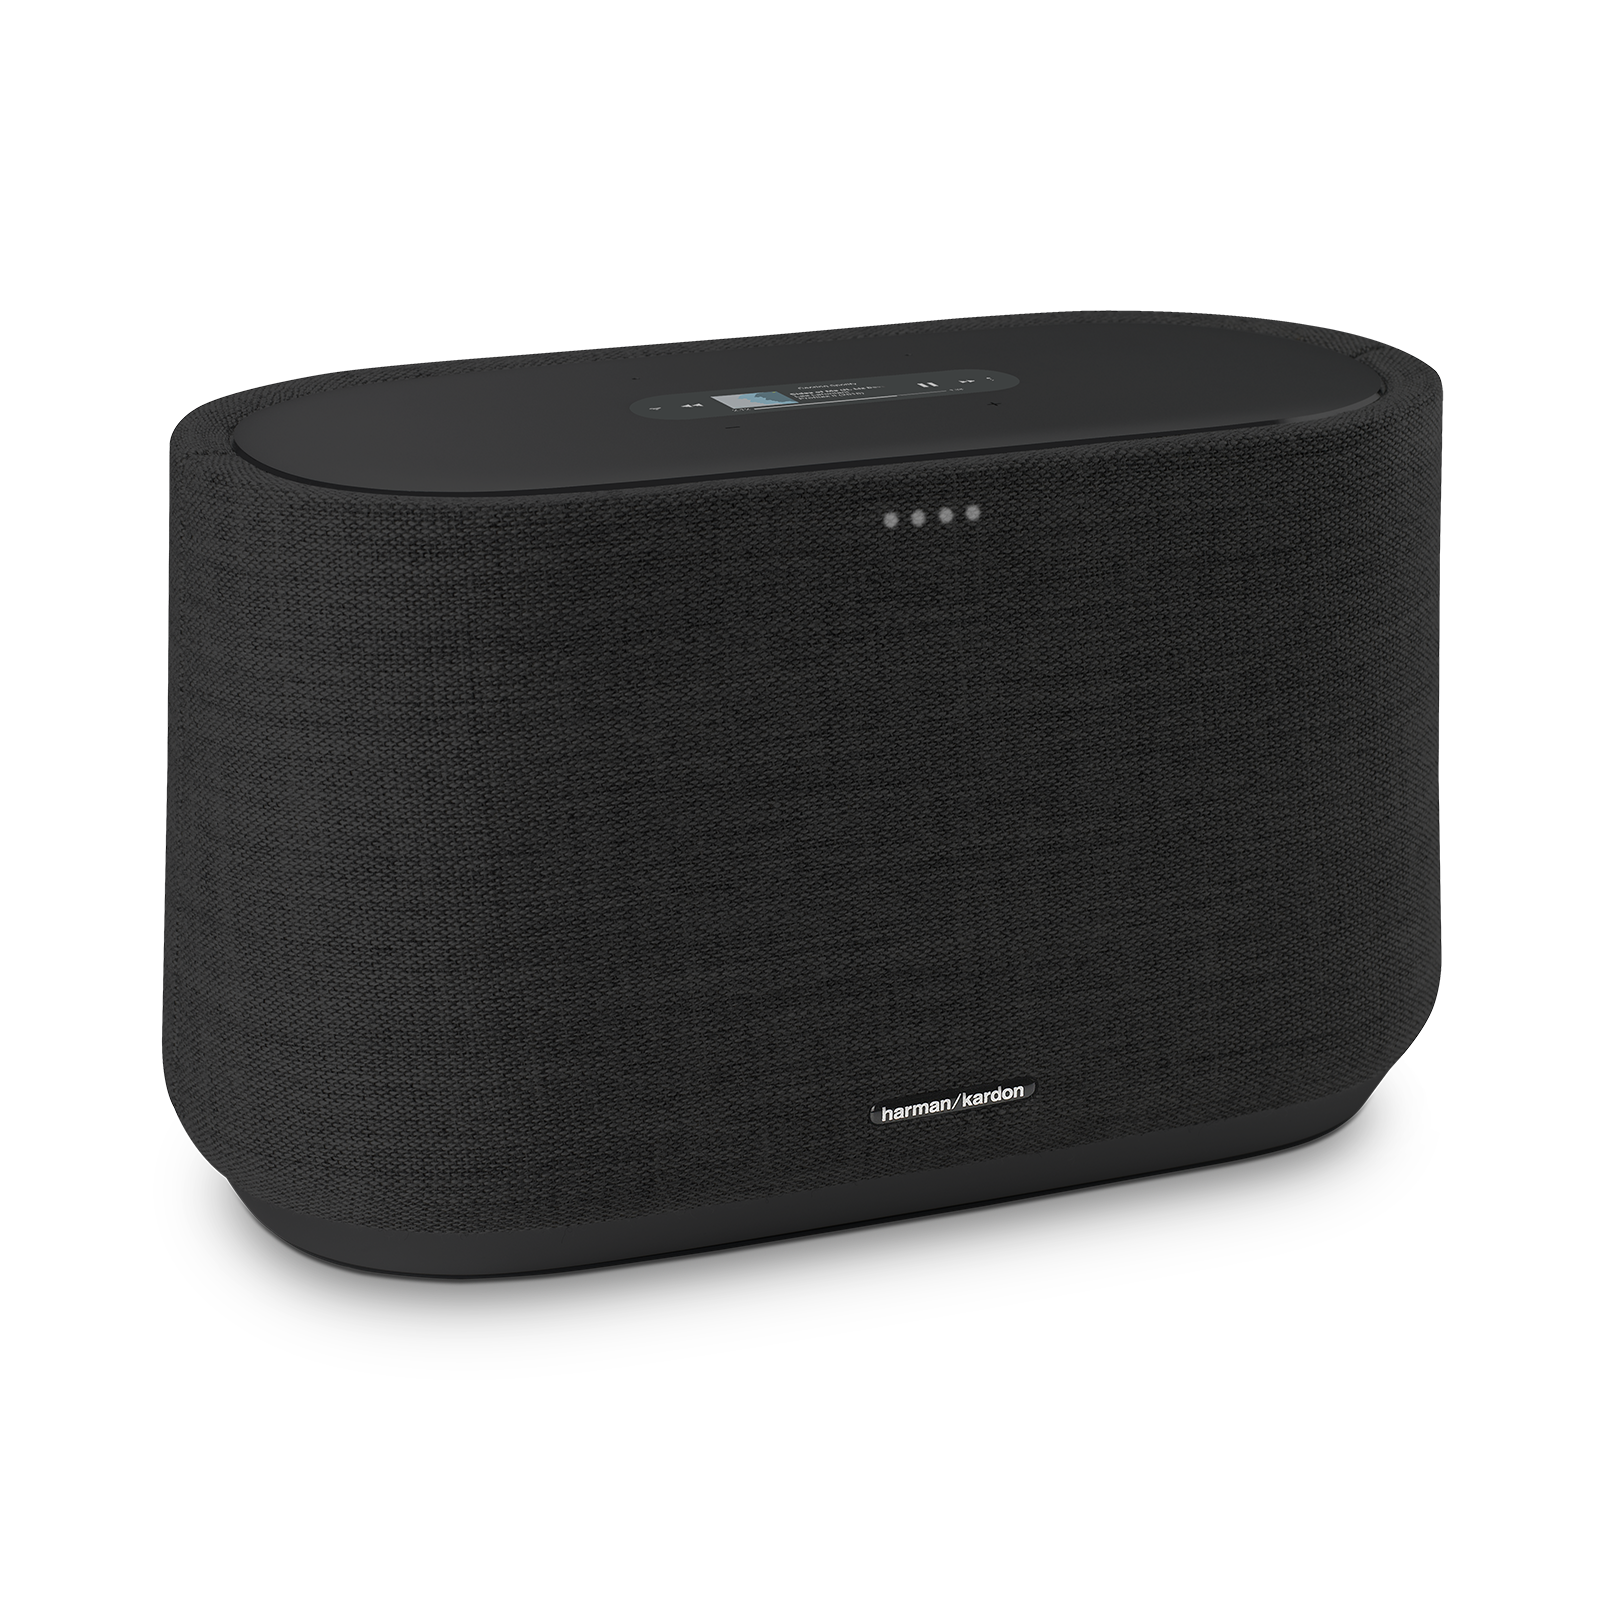 Harman Kardon Citation 300 - Black - The medium-size smart home speaker with award winning design - Hero